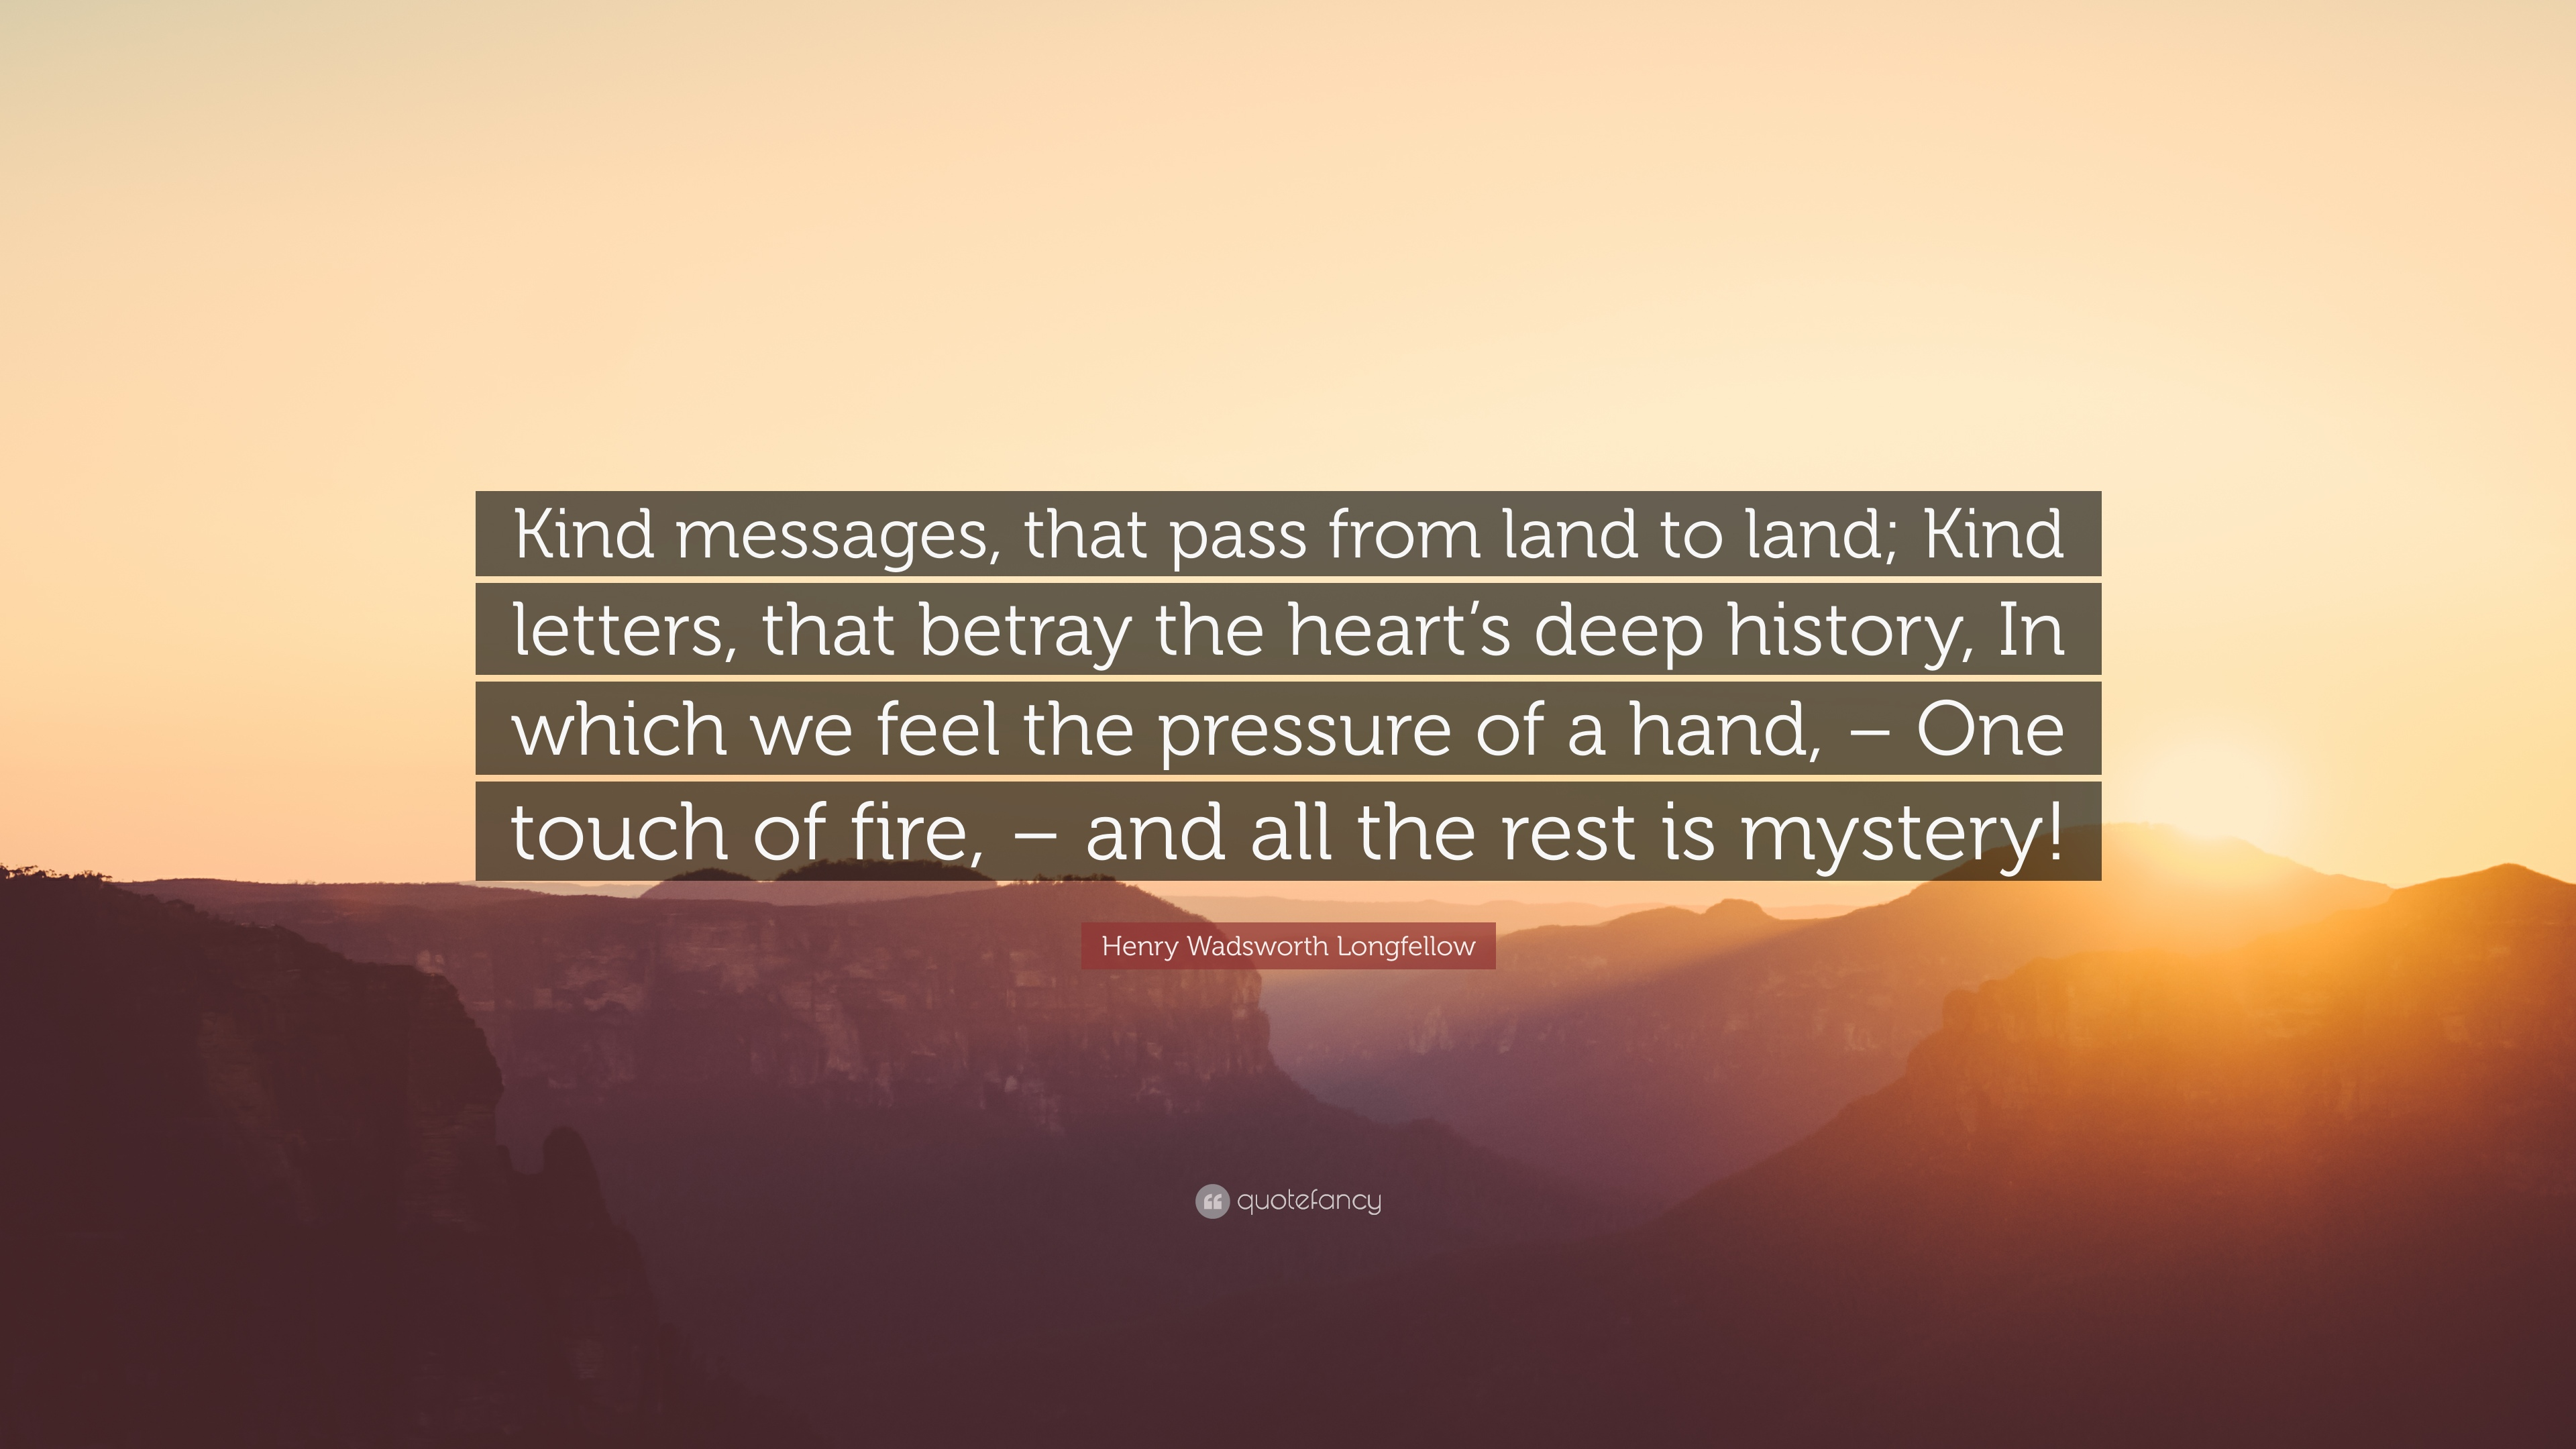 henry wadsworth longfellow quote kind messages that pass from